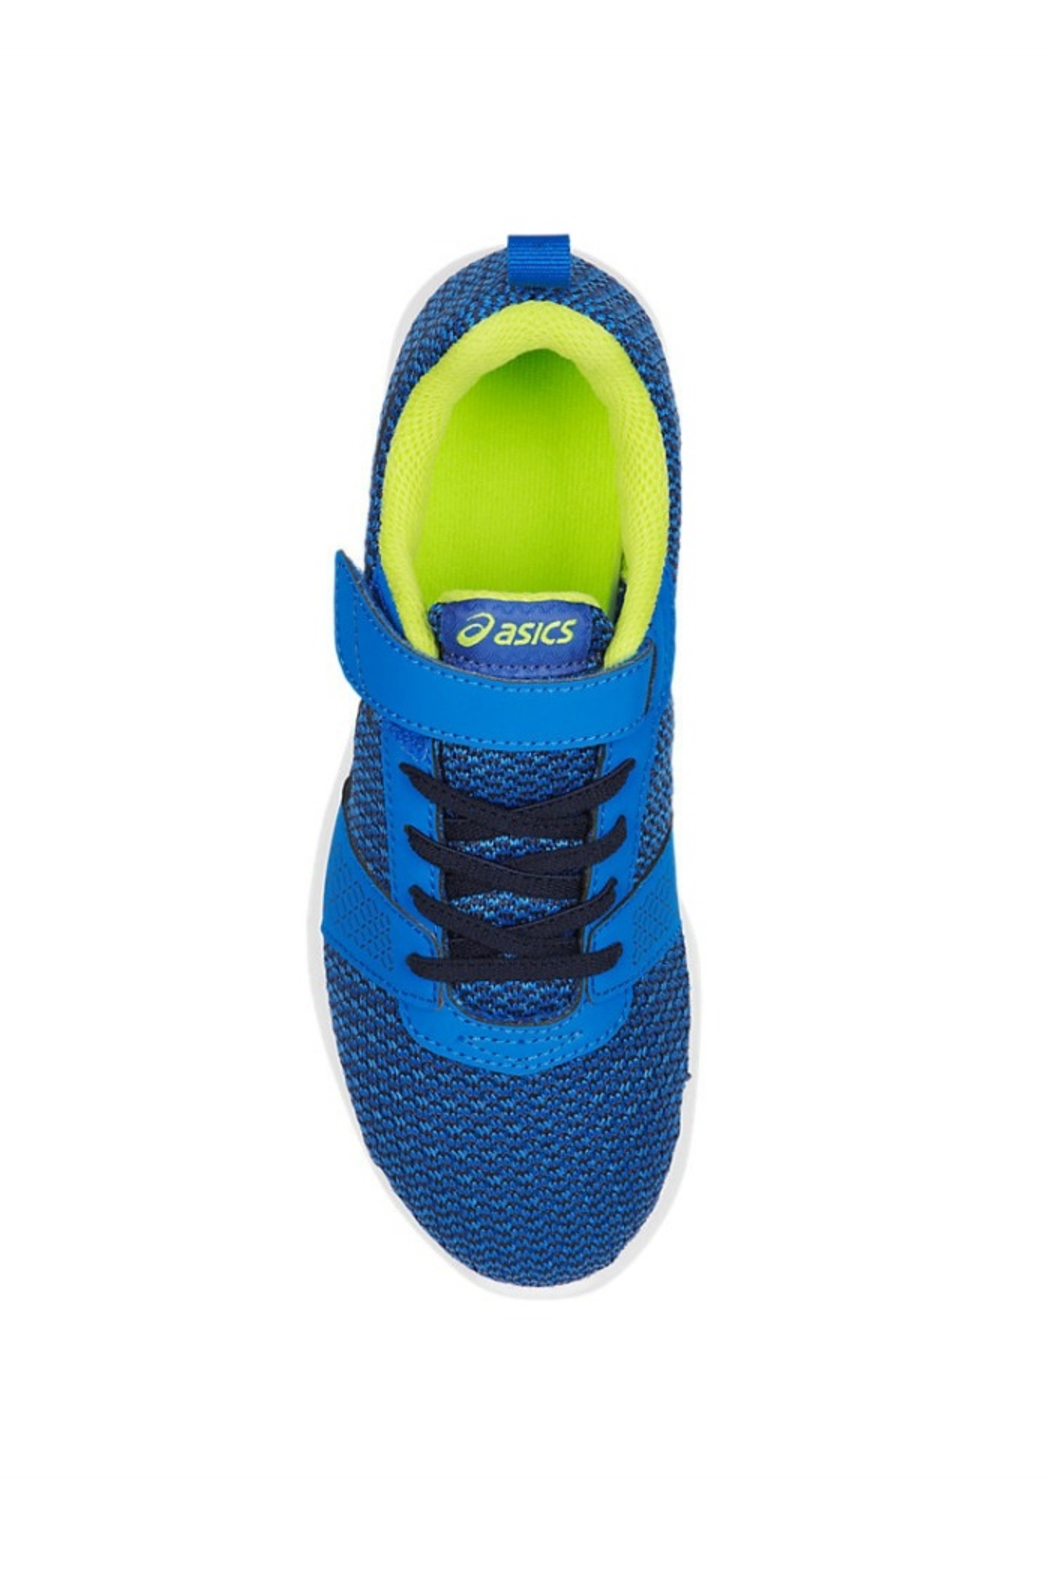 Asics KANMEI PS - Side Cropped Image